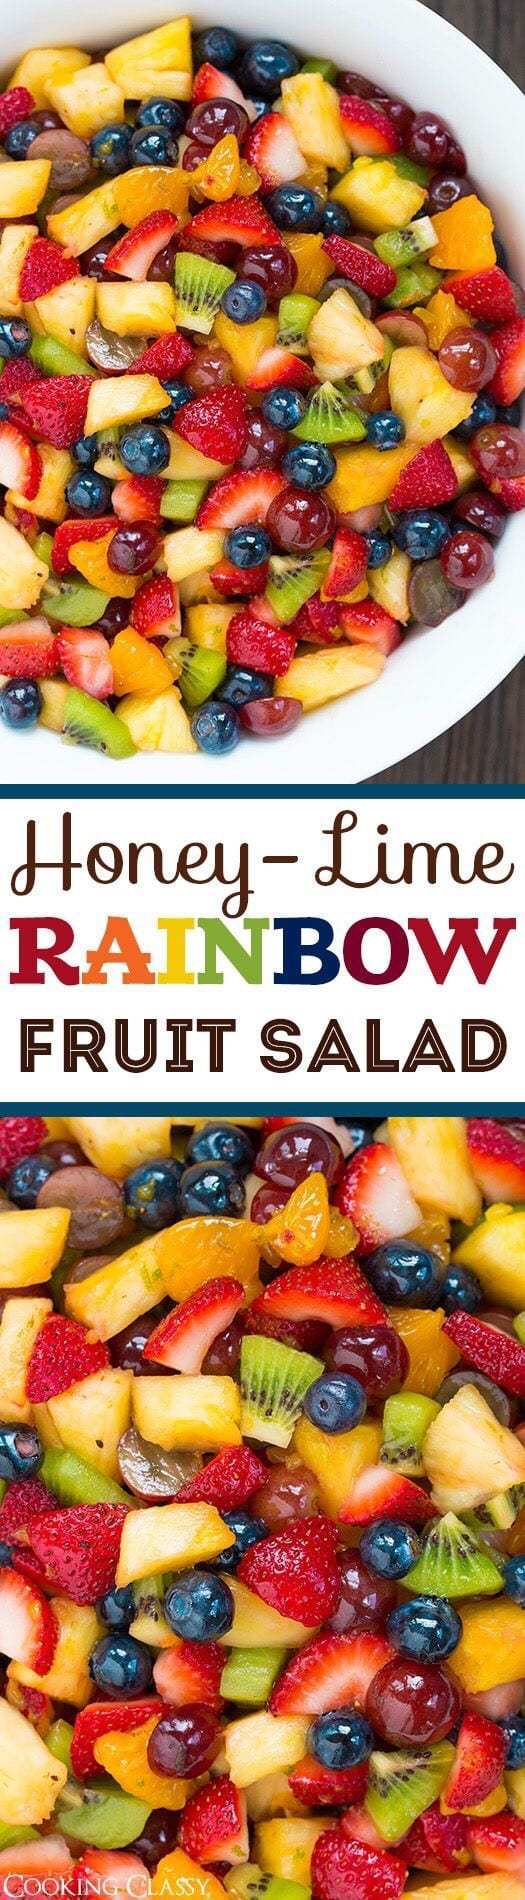 1. Honey-Lime Rainbow Fruit Salad